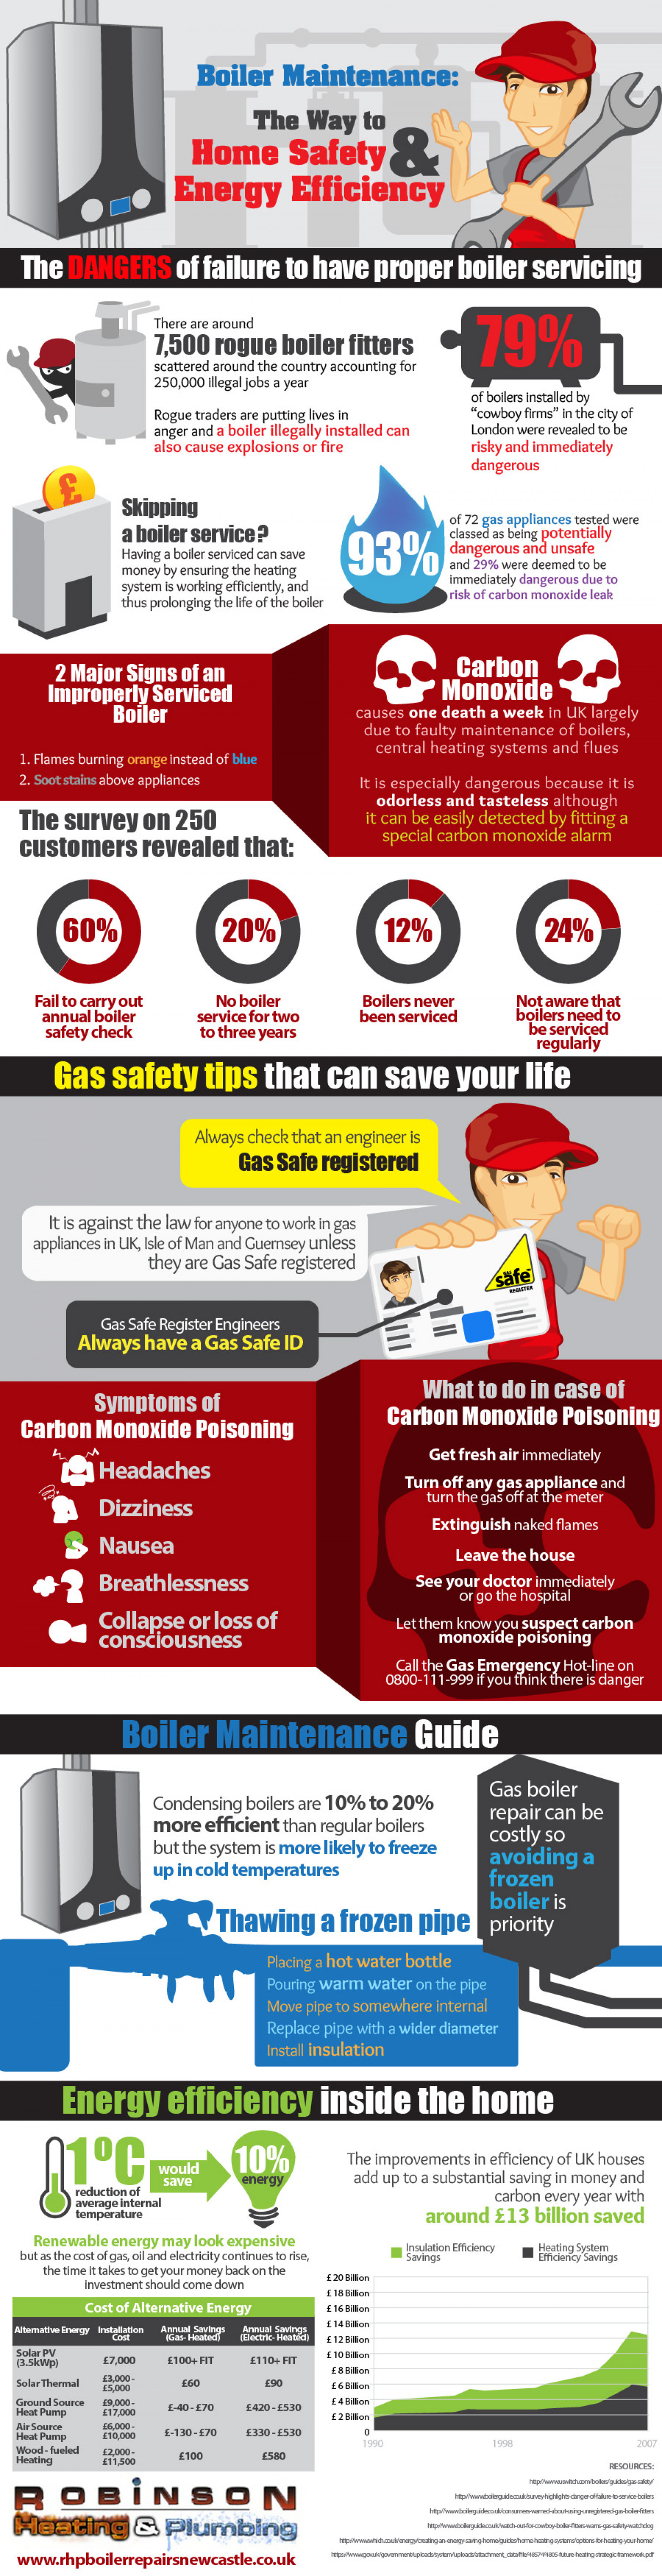 Boiler Maintenance: The Way to Home Safety and Energy Efficiency Infographic